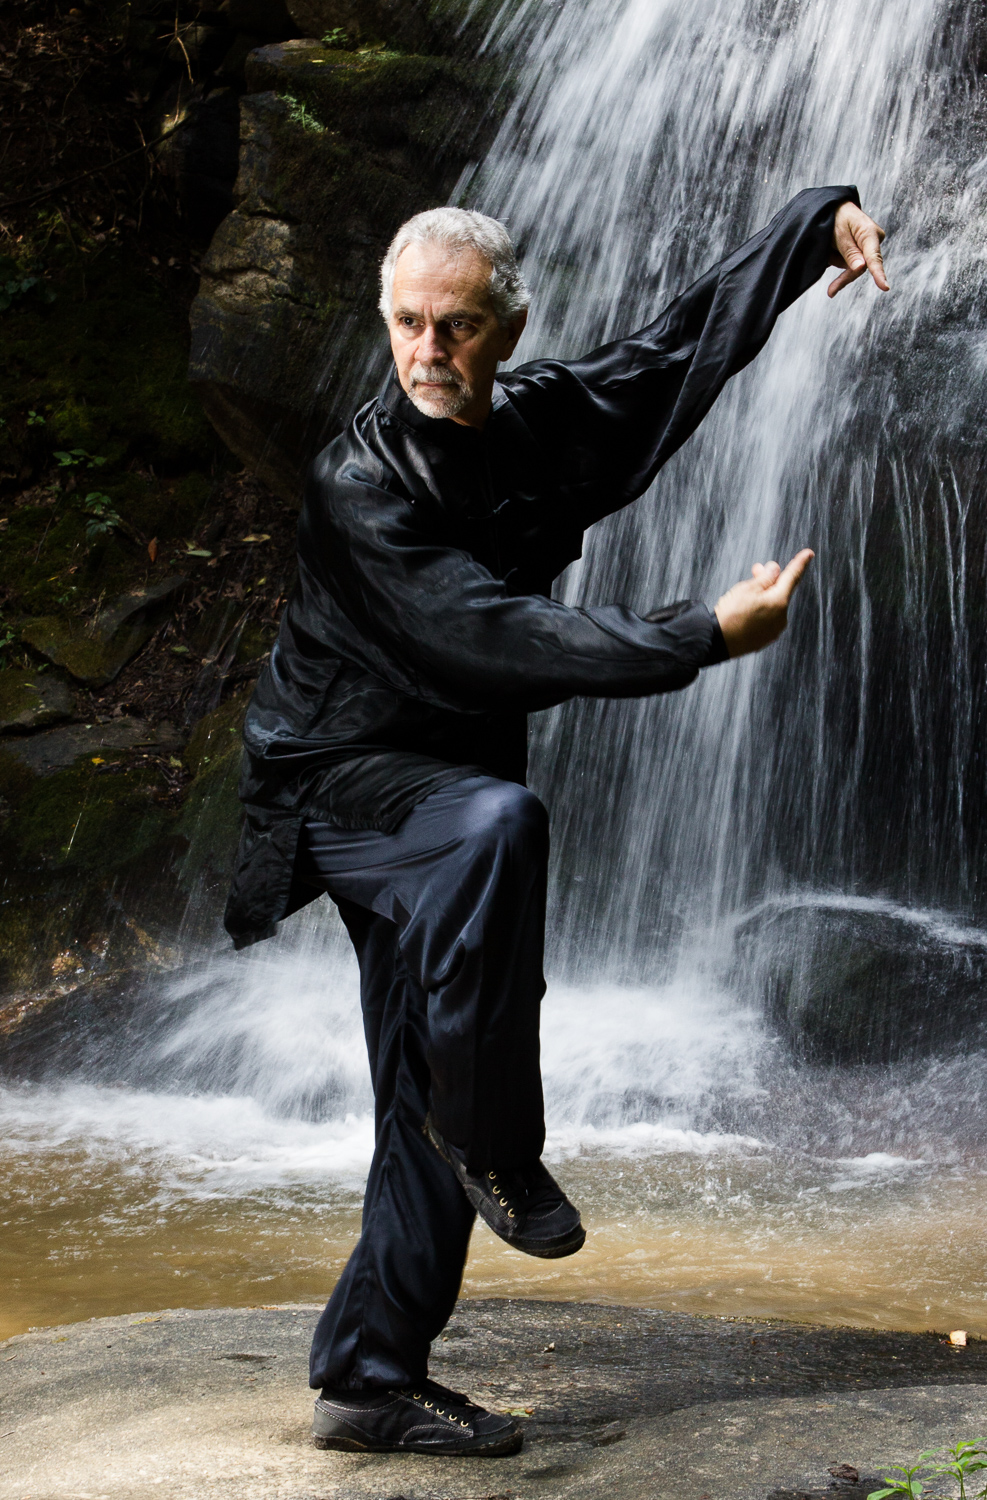 Sifu Paolillo in Praying Mantis posture, 2012